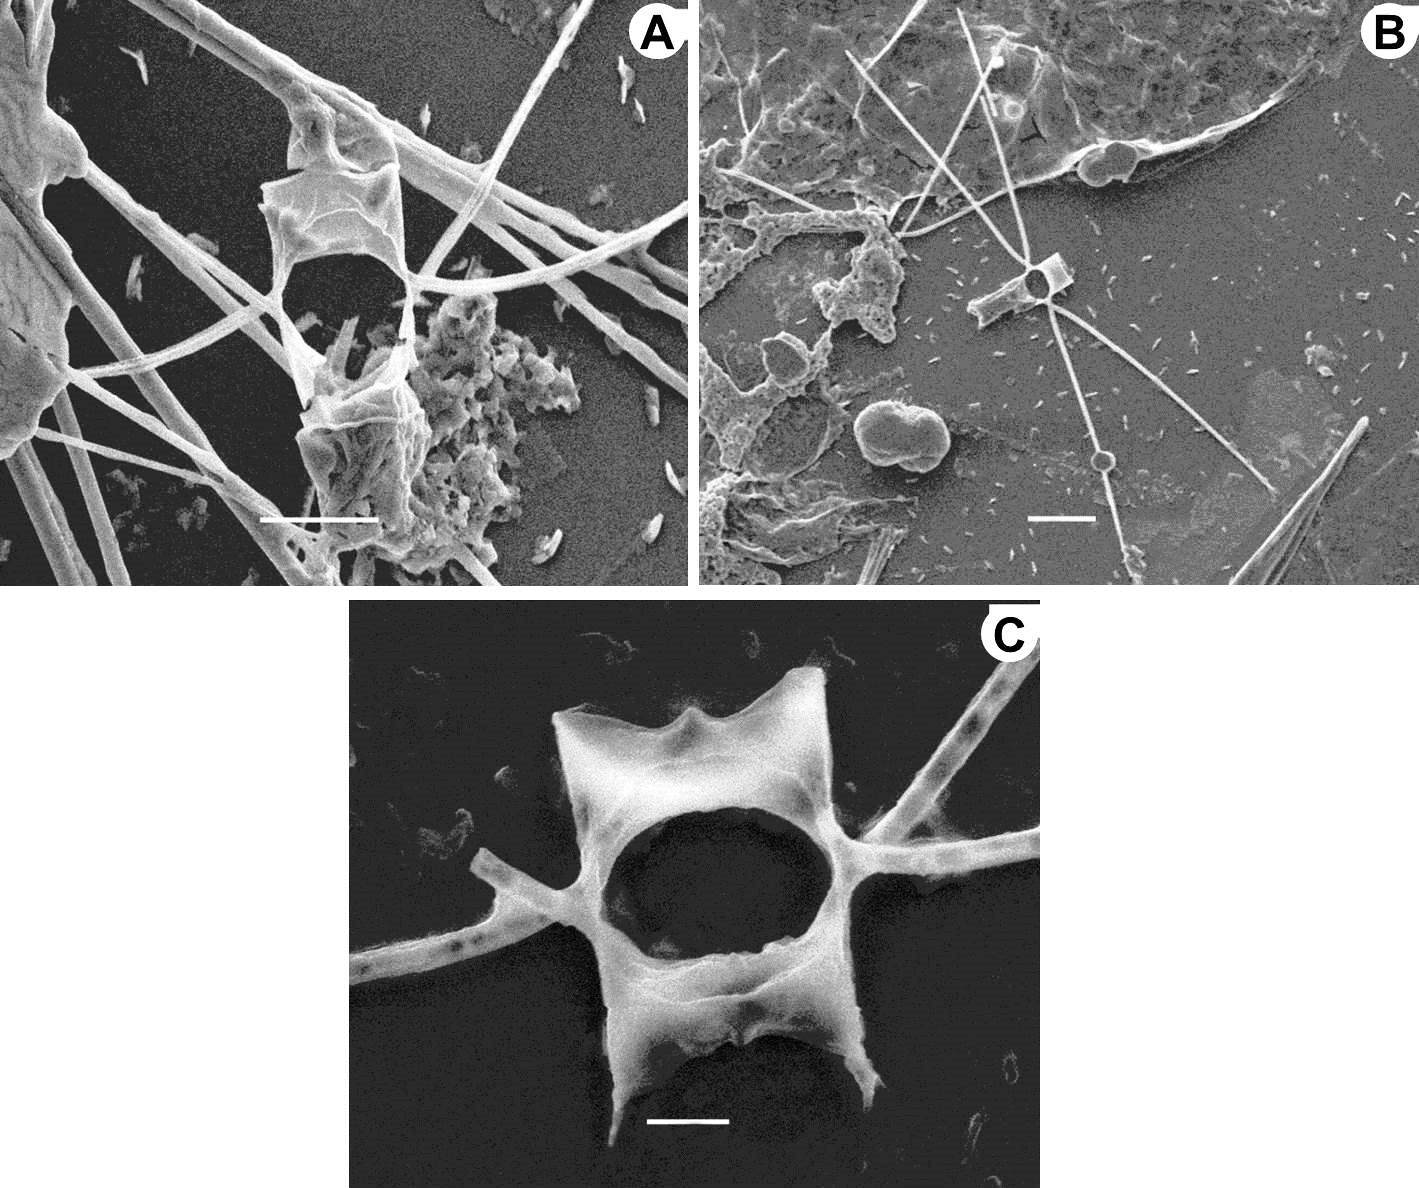 Chaetoceros lorenzianus (SEM, pair of sibling cells in girdle view): A, Scale bar: 10 µm; B, Sibling cells with long setae. Scale bar: 20 µm; C, Sibling valves with wide aperture. Scale bar: 5 µm.